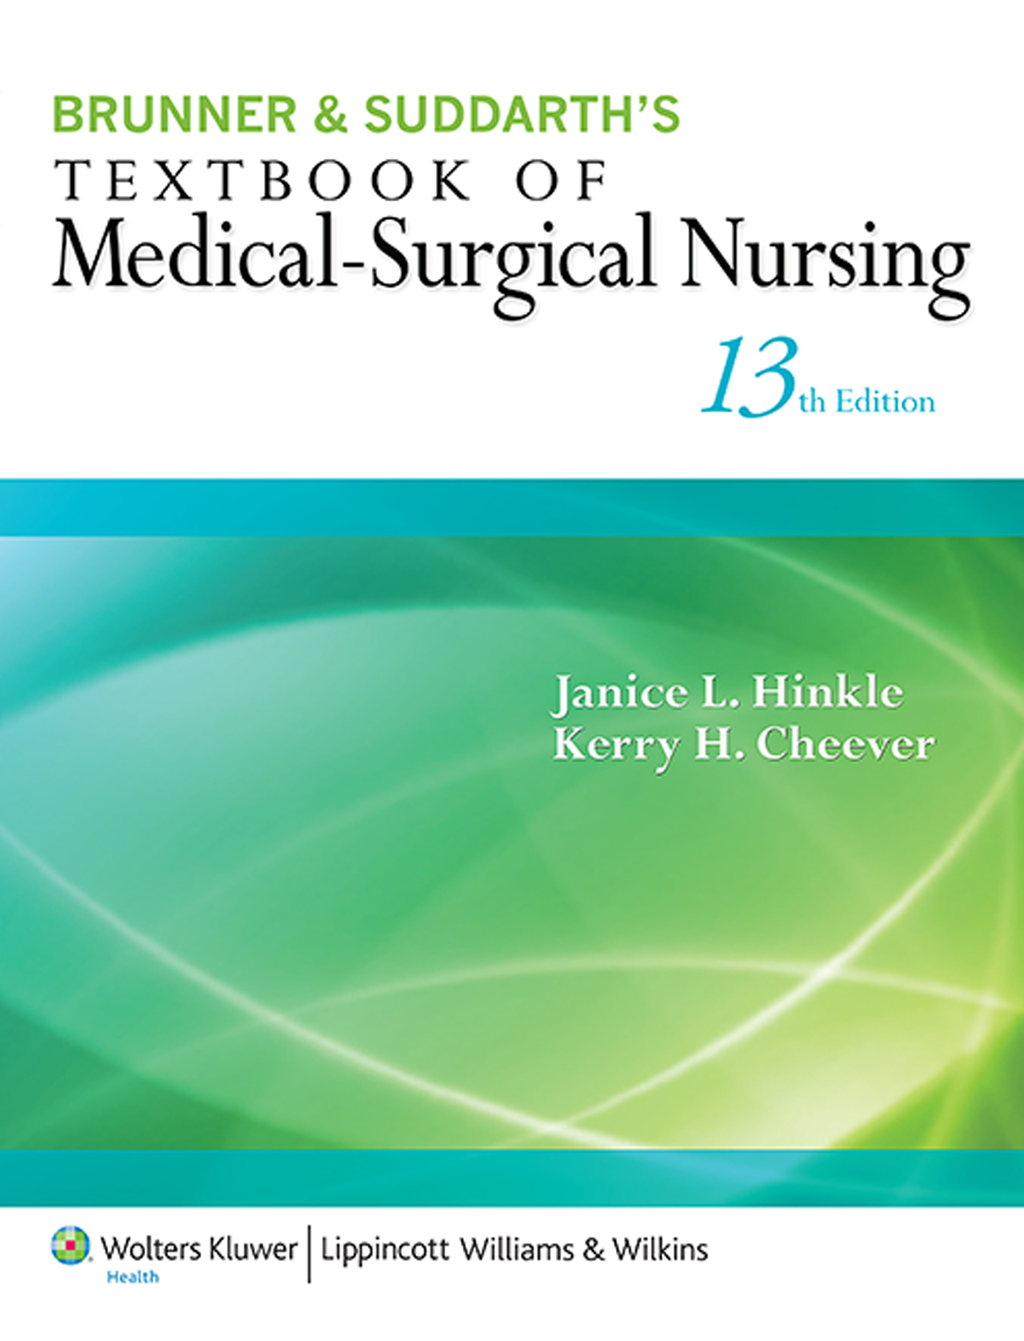 Kerry H. Cheever  Janice L. Hinkle - Brunner & Suddarth's Textbook of Medical-Surgical Nursing